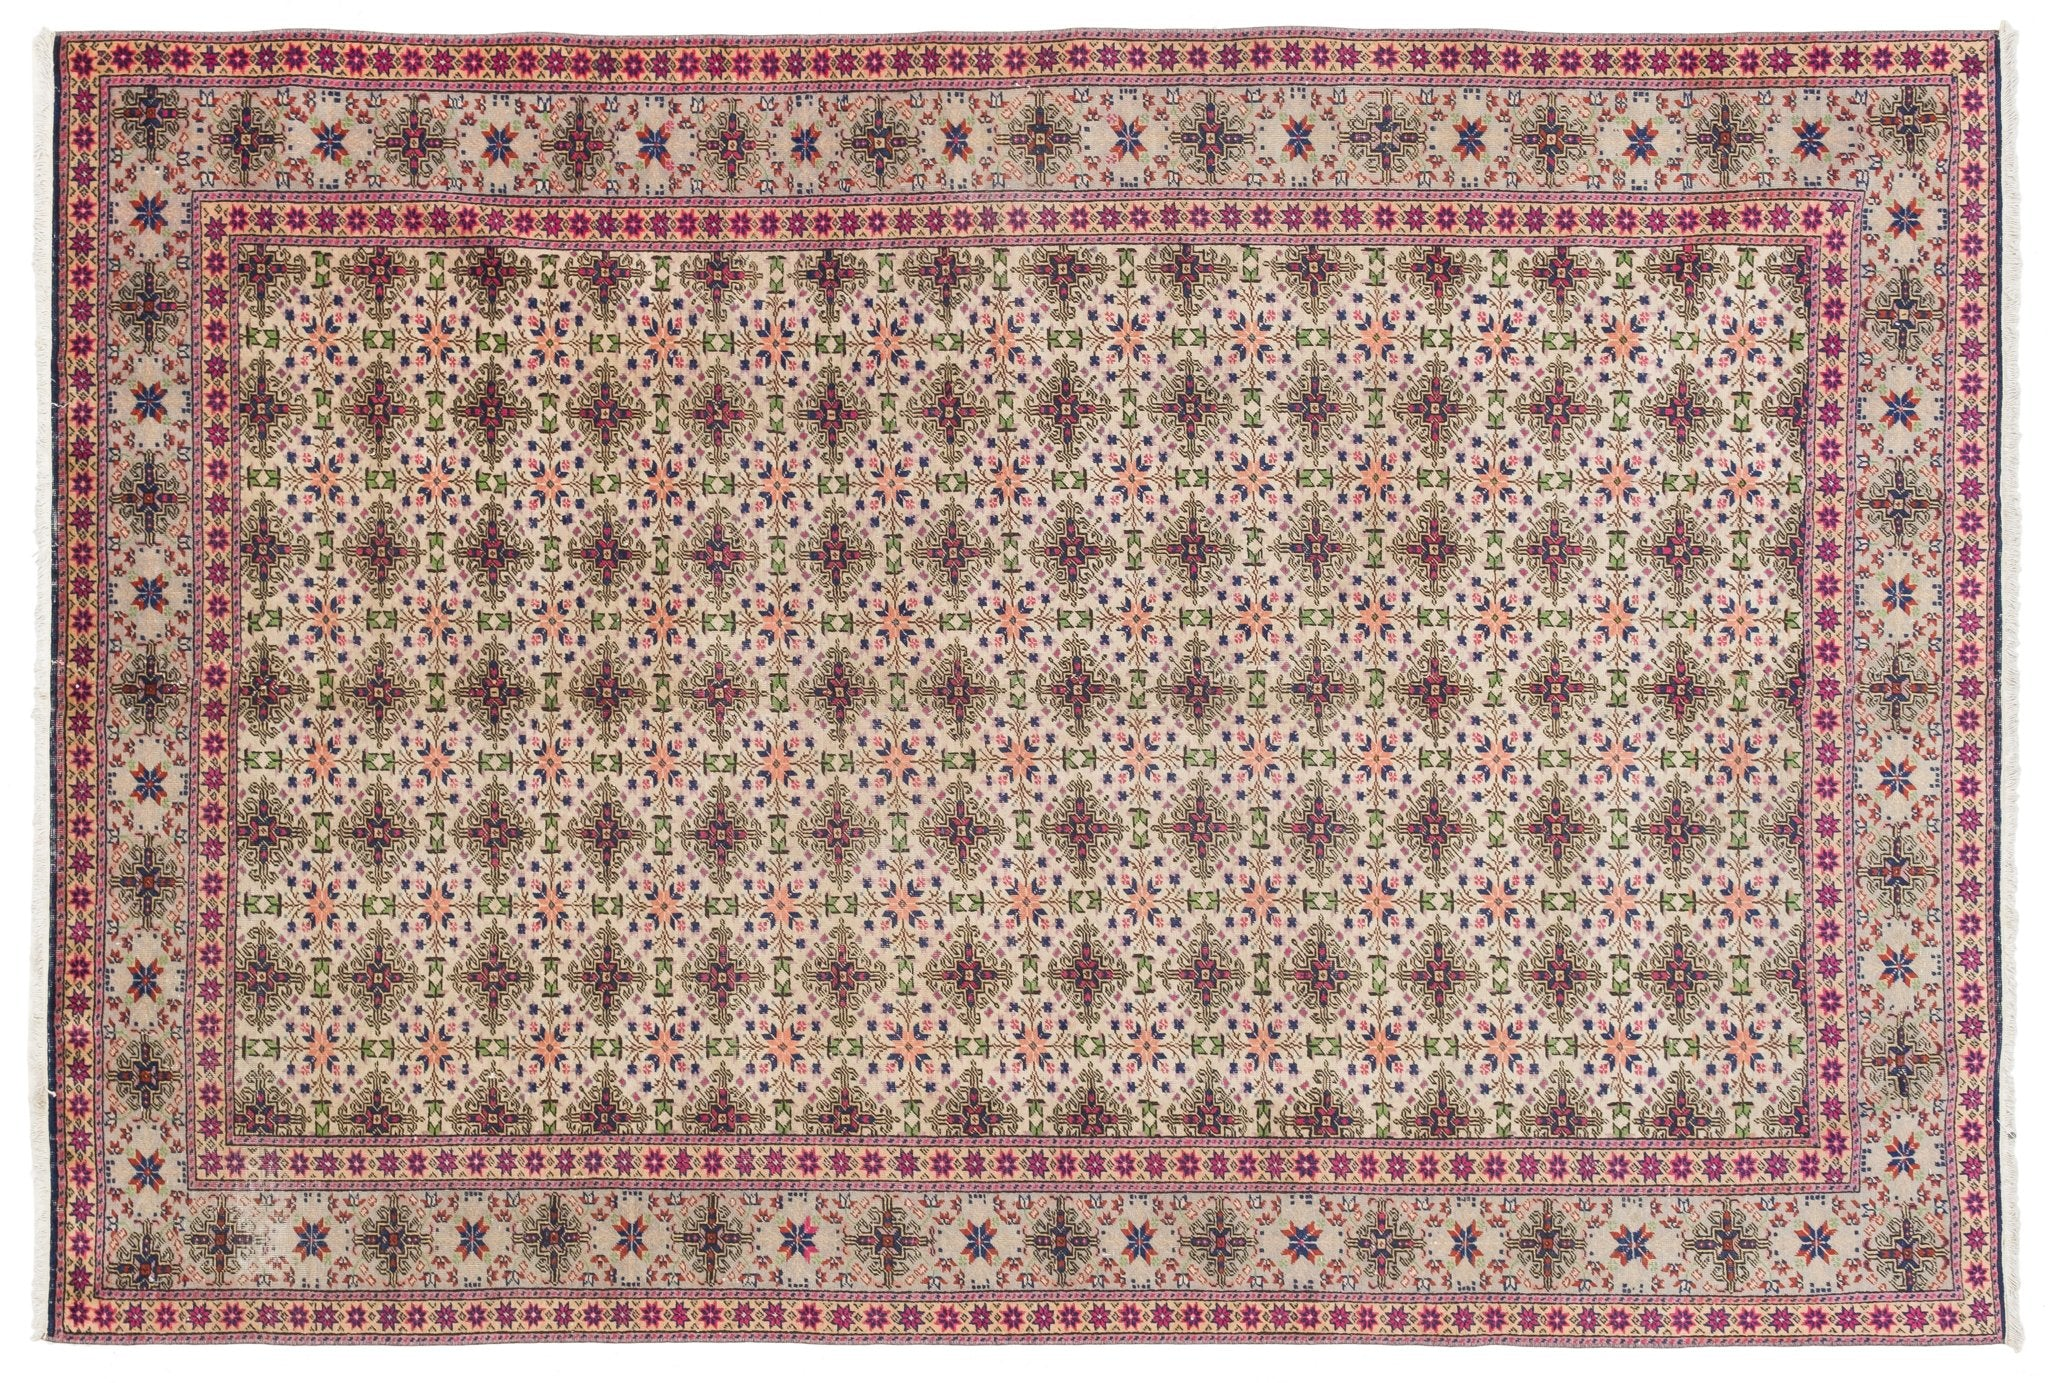 Vintage Persian Style Rug Synne